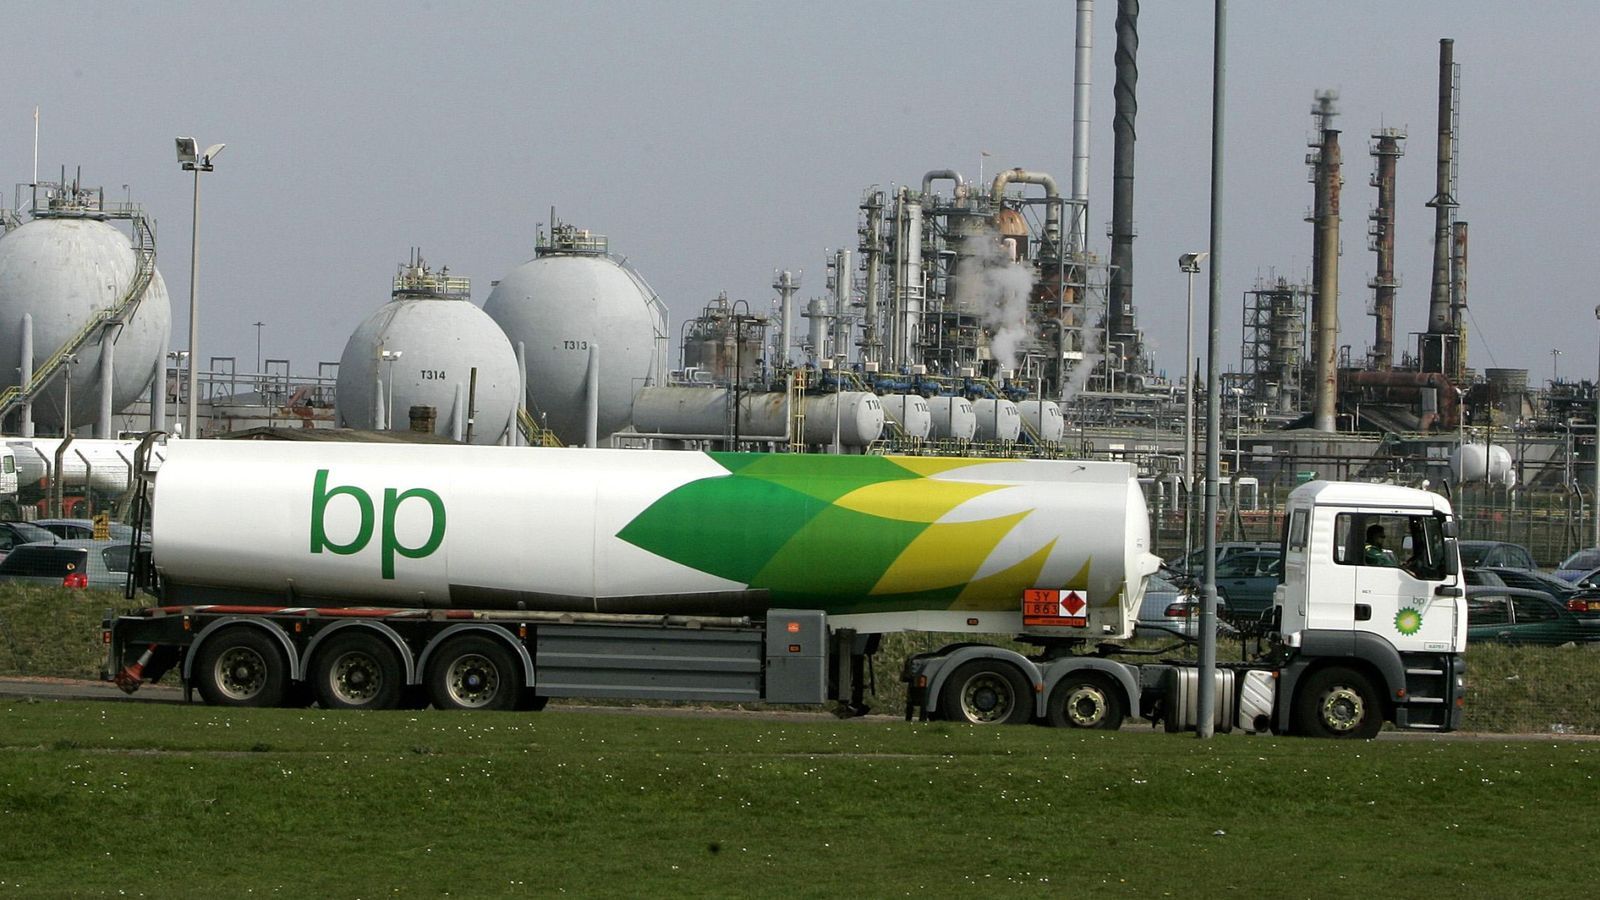 BP 'prioritising' fuel deliveries as driver shortages hit supplies – and some stations are shut